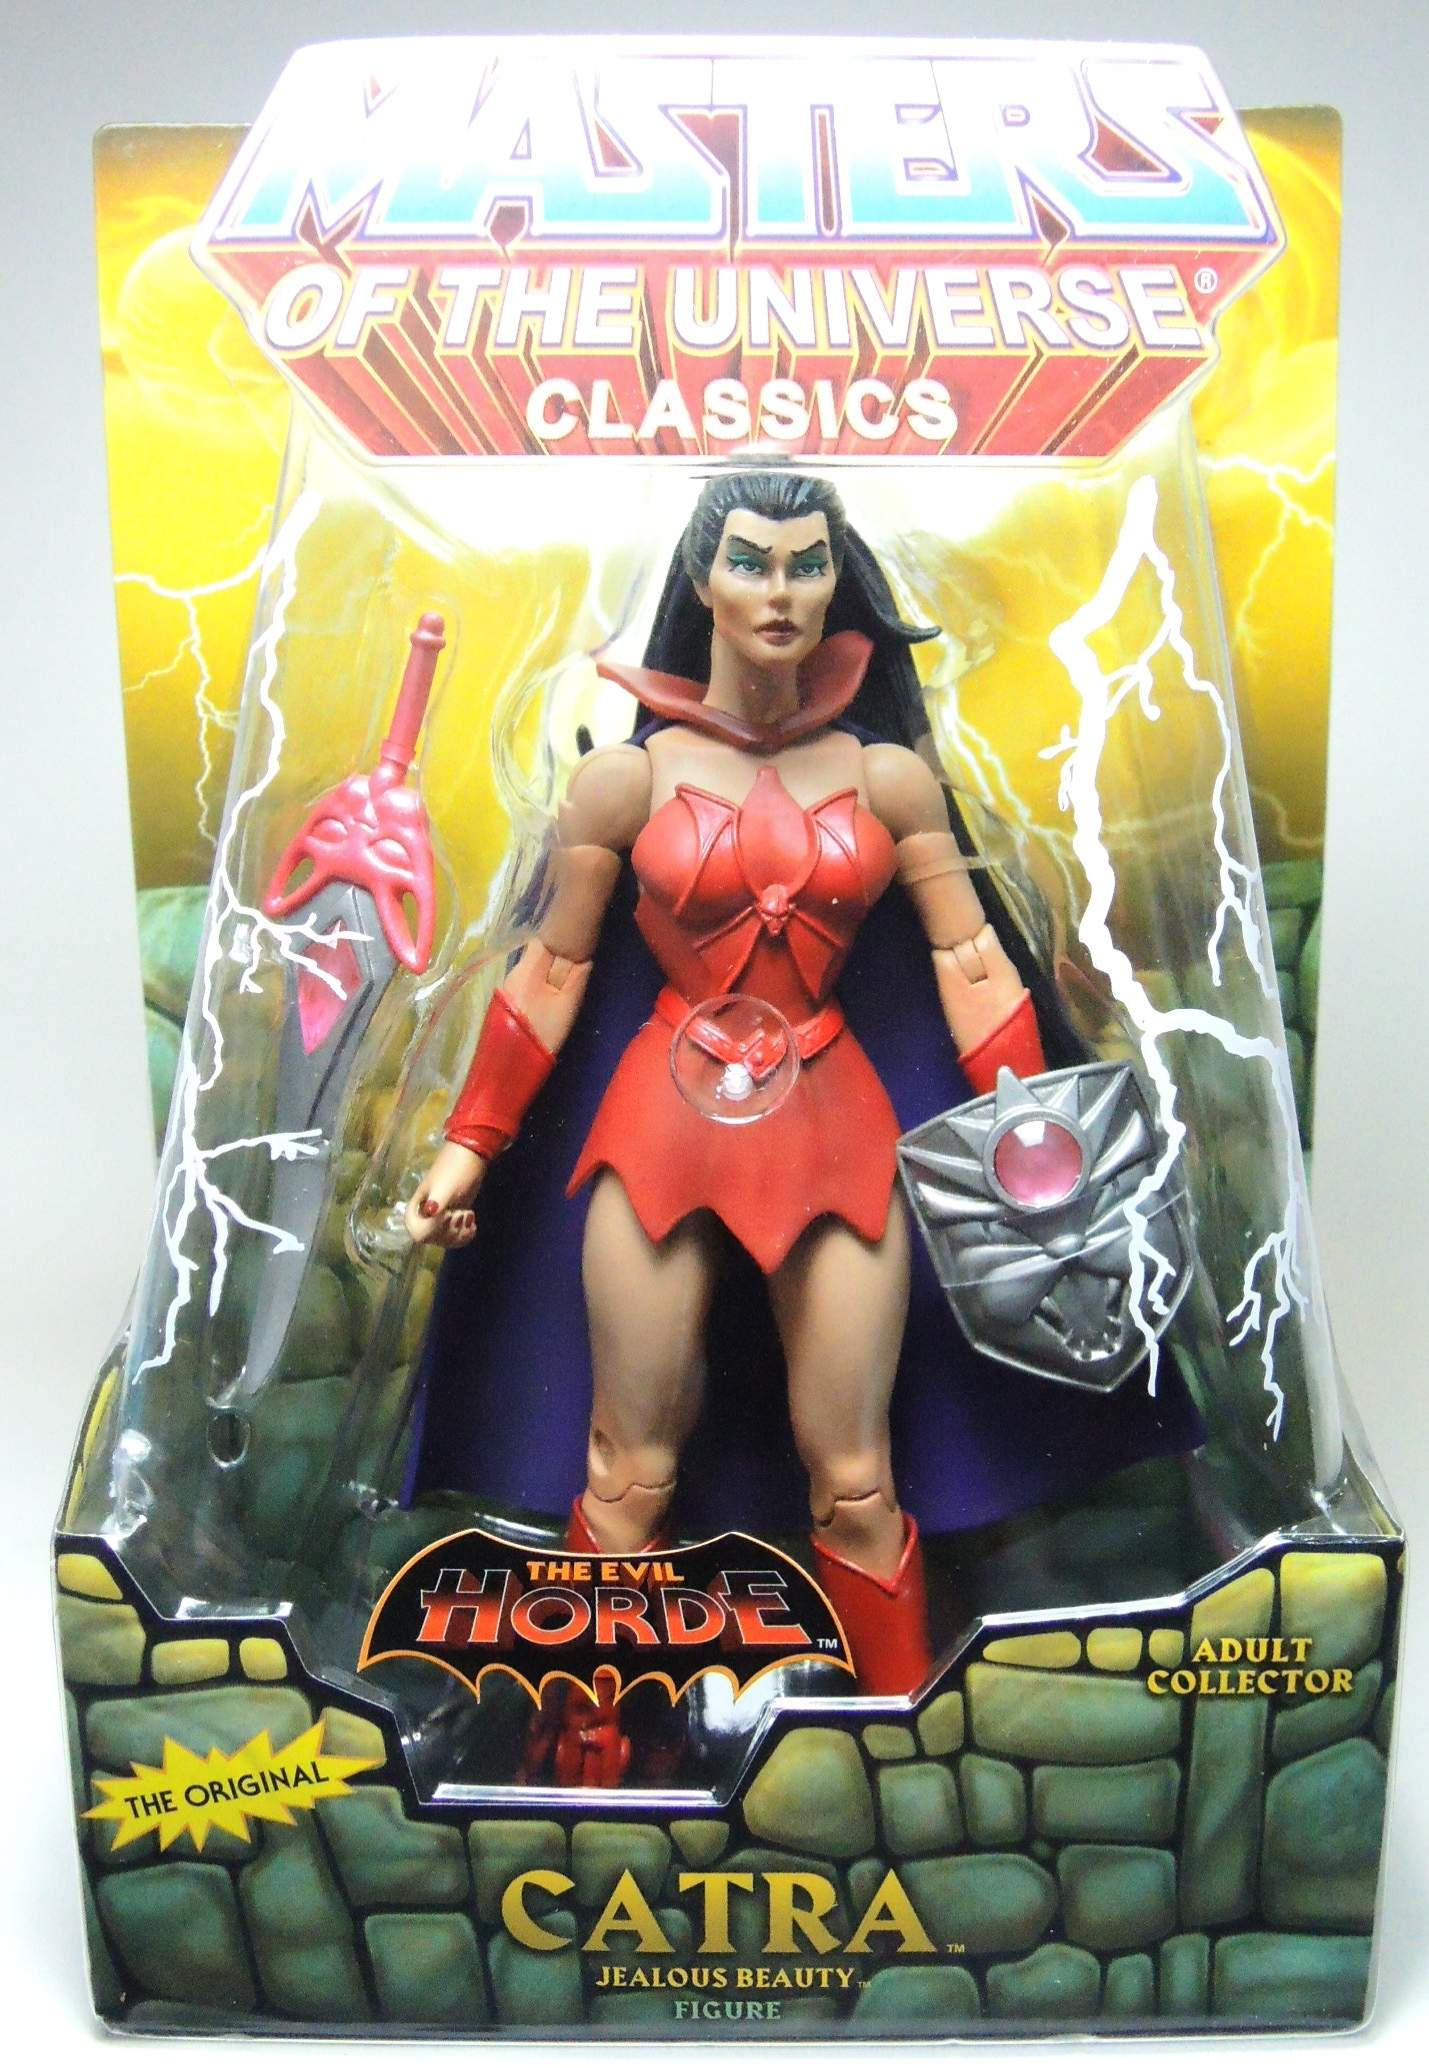 Masters of the Universe Classics - Catra from the Evil Horde Mattel, Masters of the Universe, Action Figures, 2010, fantasy, cartoon